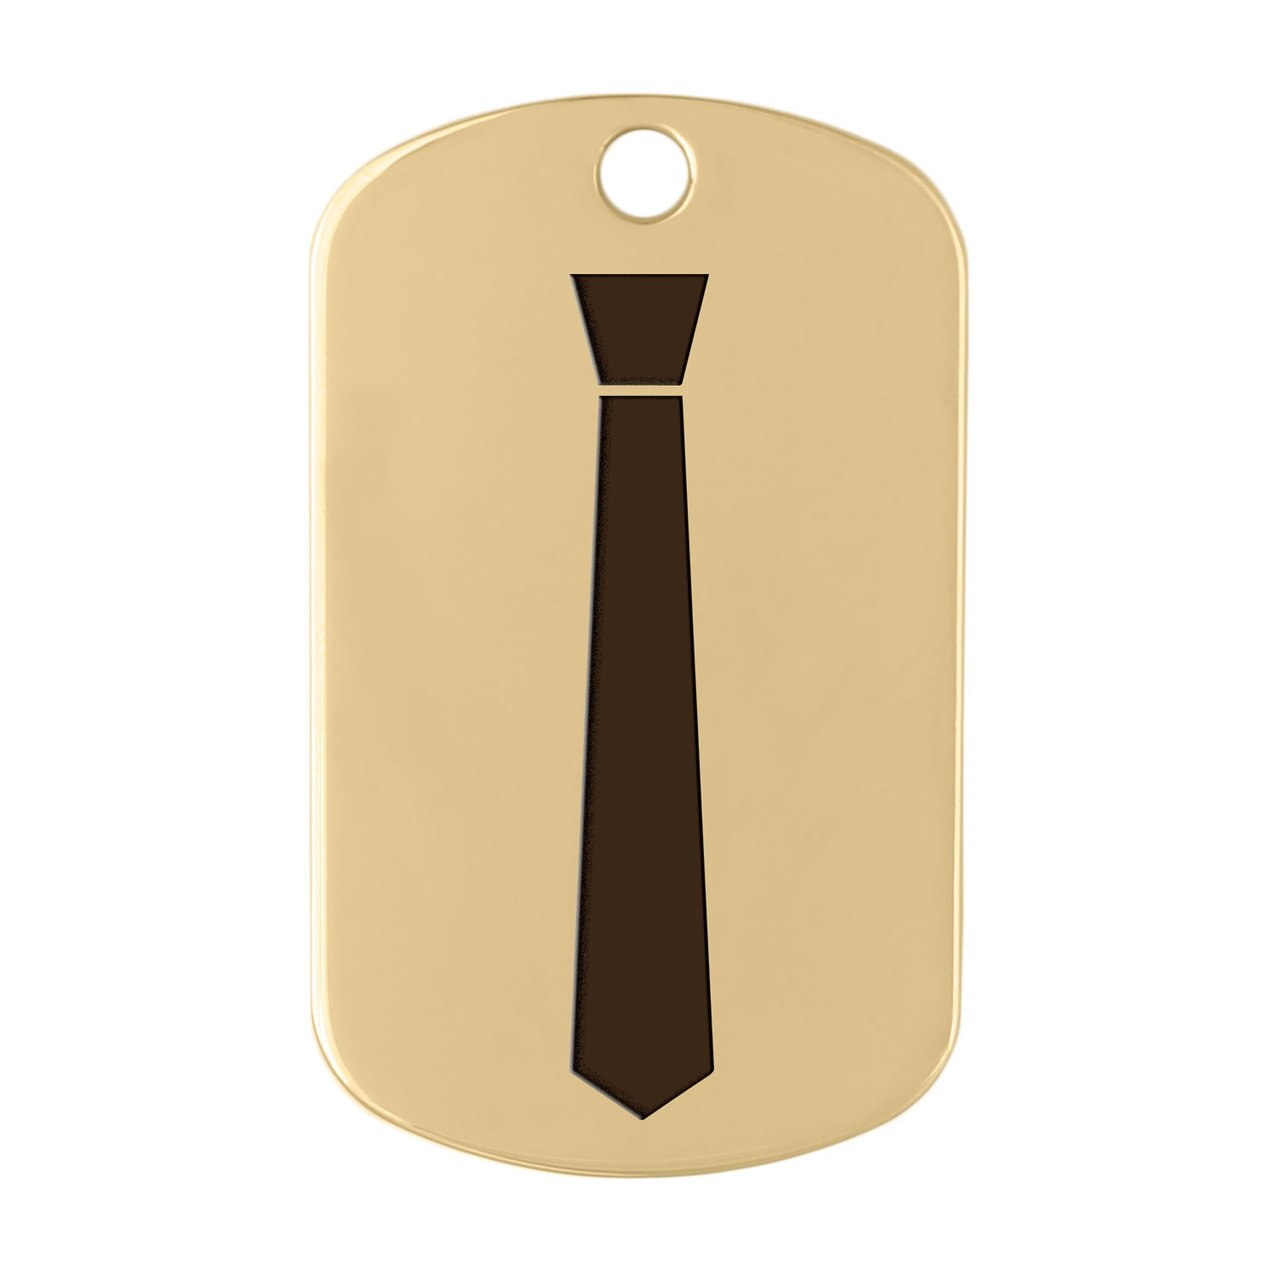 dogIDs Signature Fancy Suit and Tie Dog ID Tags Necktie Gold